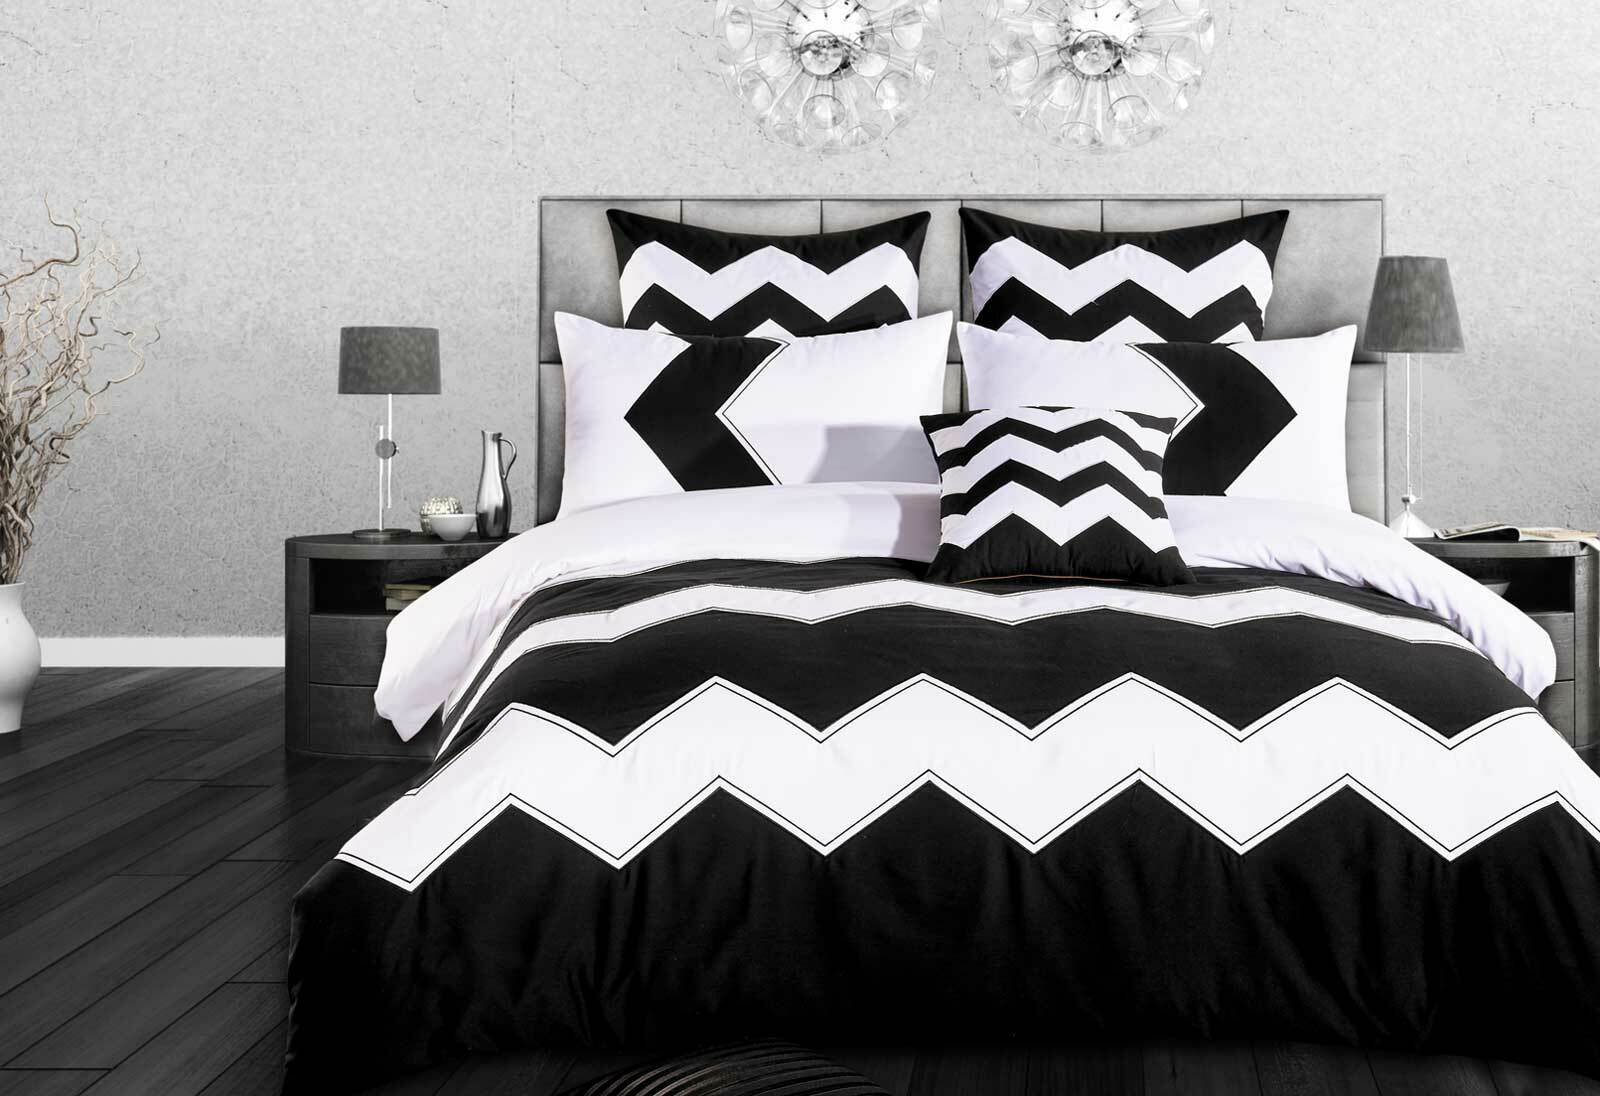 Napoli Striped Quilt Cover Set Duvet Cover Set In King Queen Size